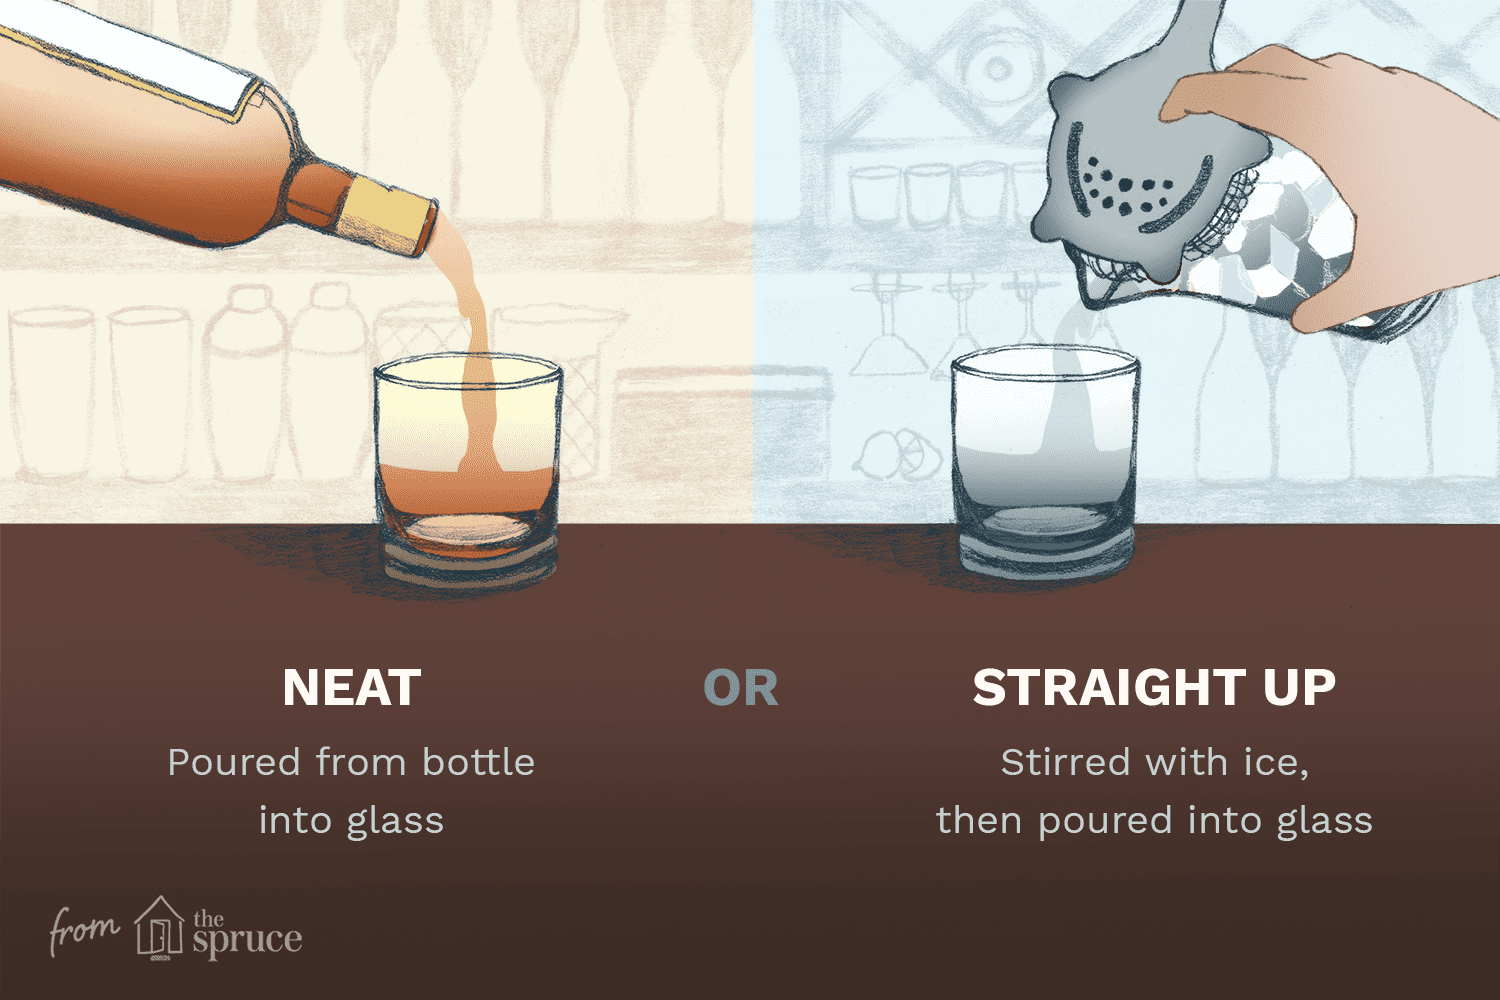 Neat, Up, Straight Up, or Straight Bar Drinks